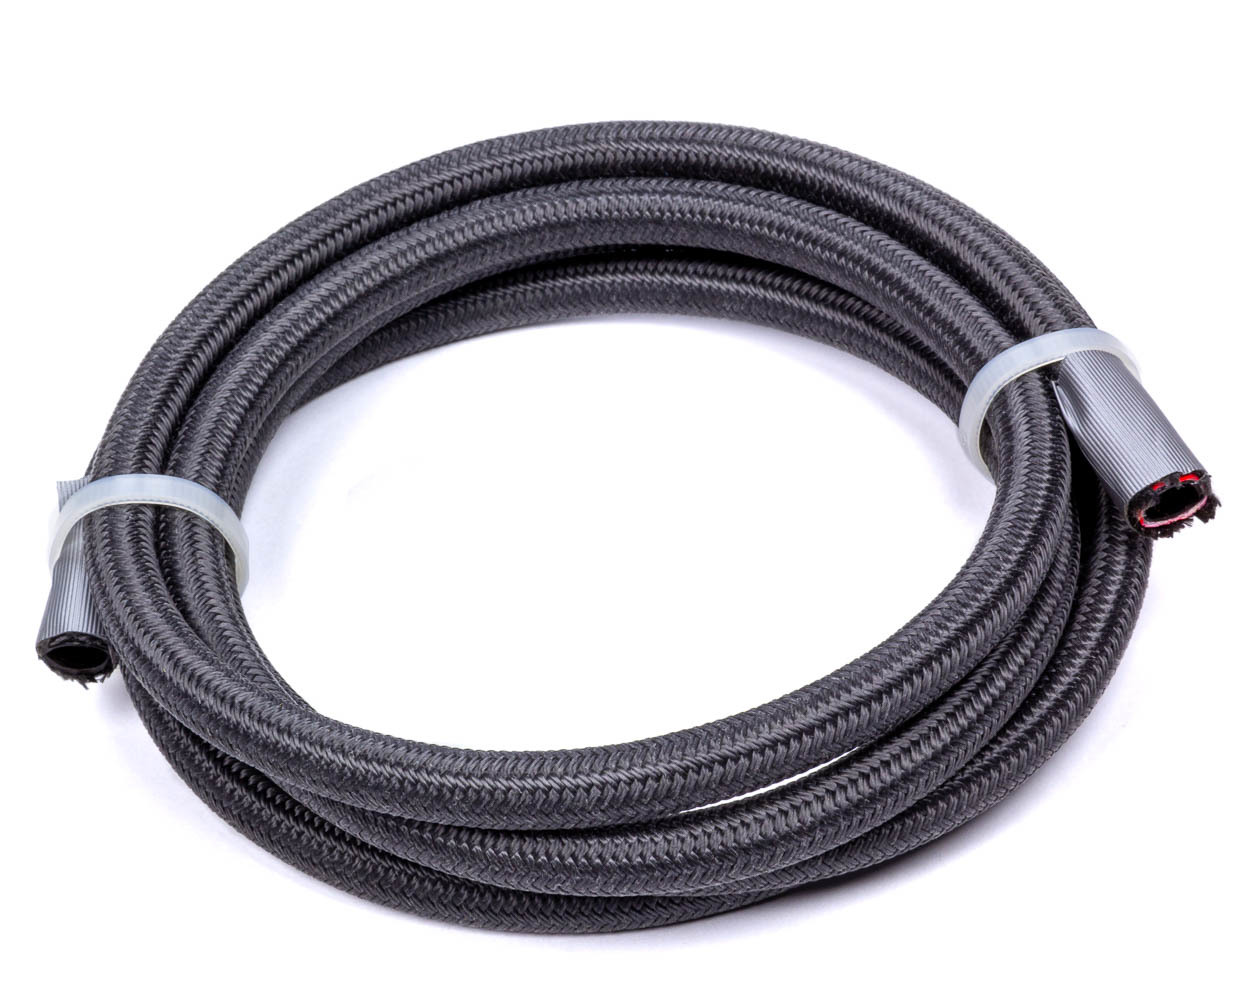 Fragola 2700604 Hose, Race-Rite, 4 AN, 6 ft, Braided Fire Retardant Fabric, PTFE, Black, Each